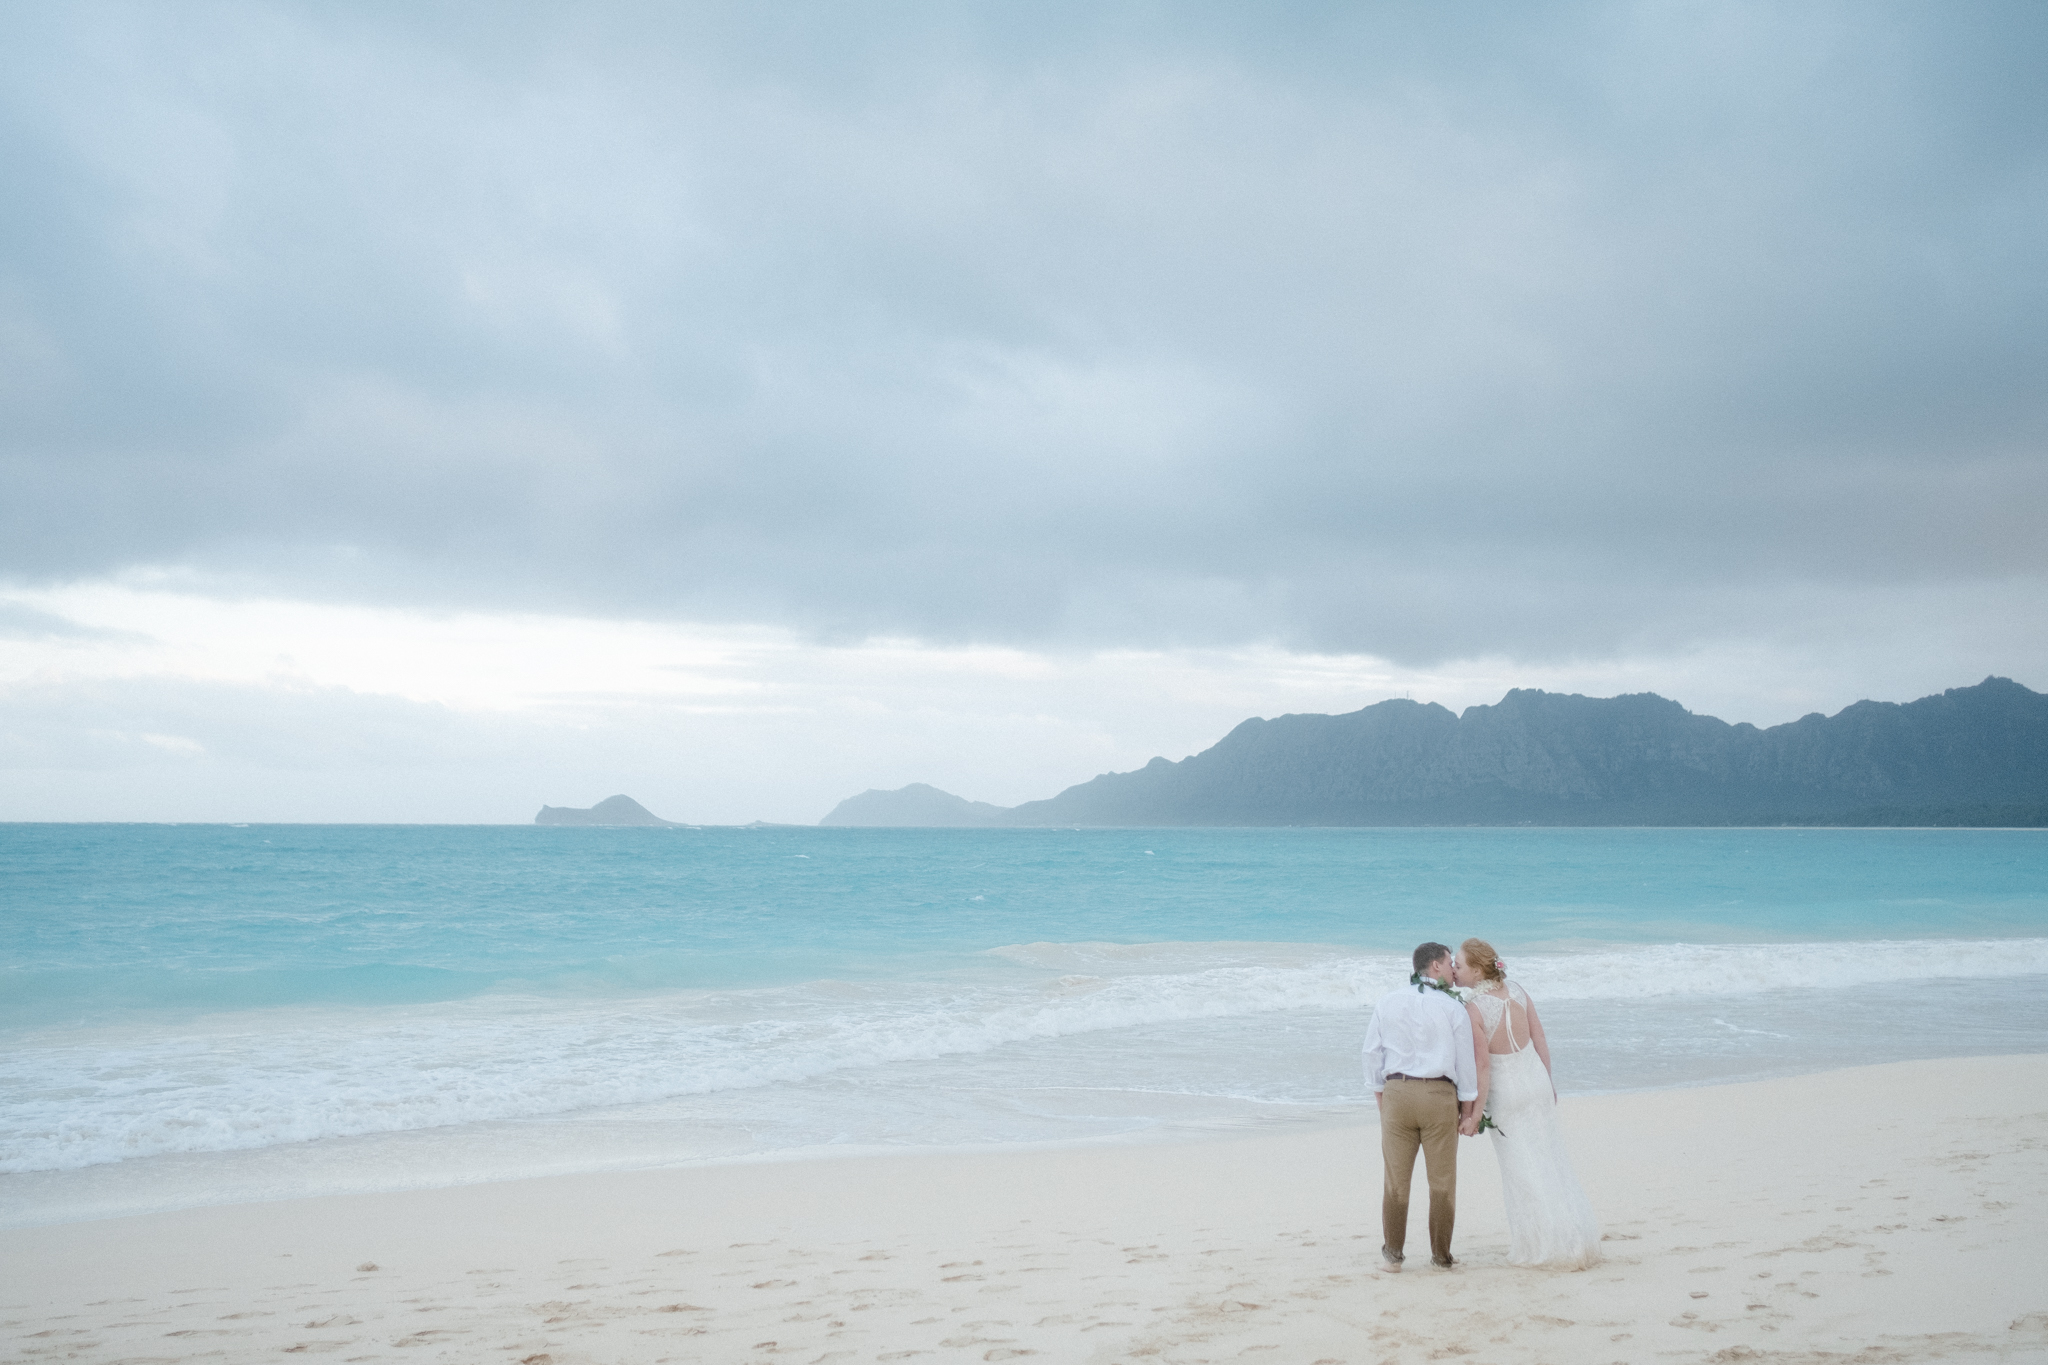 waimanalo_beach_wedding_photographer-45.jpg